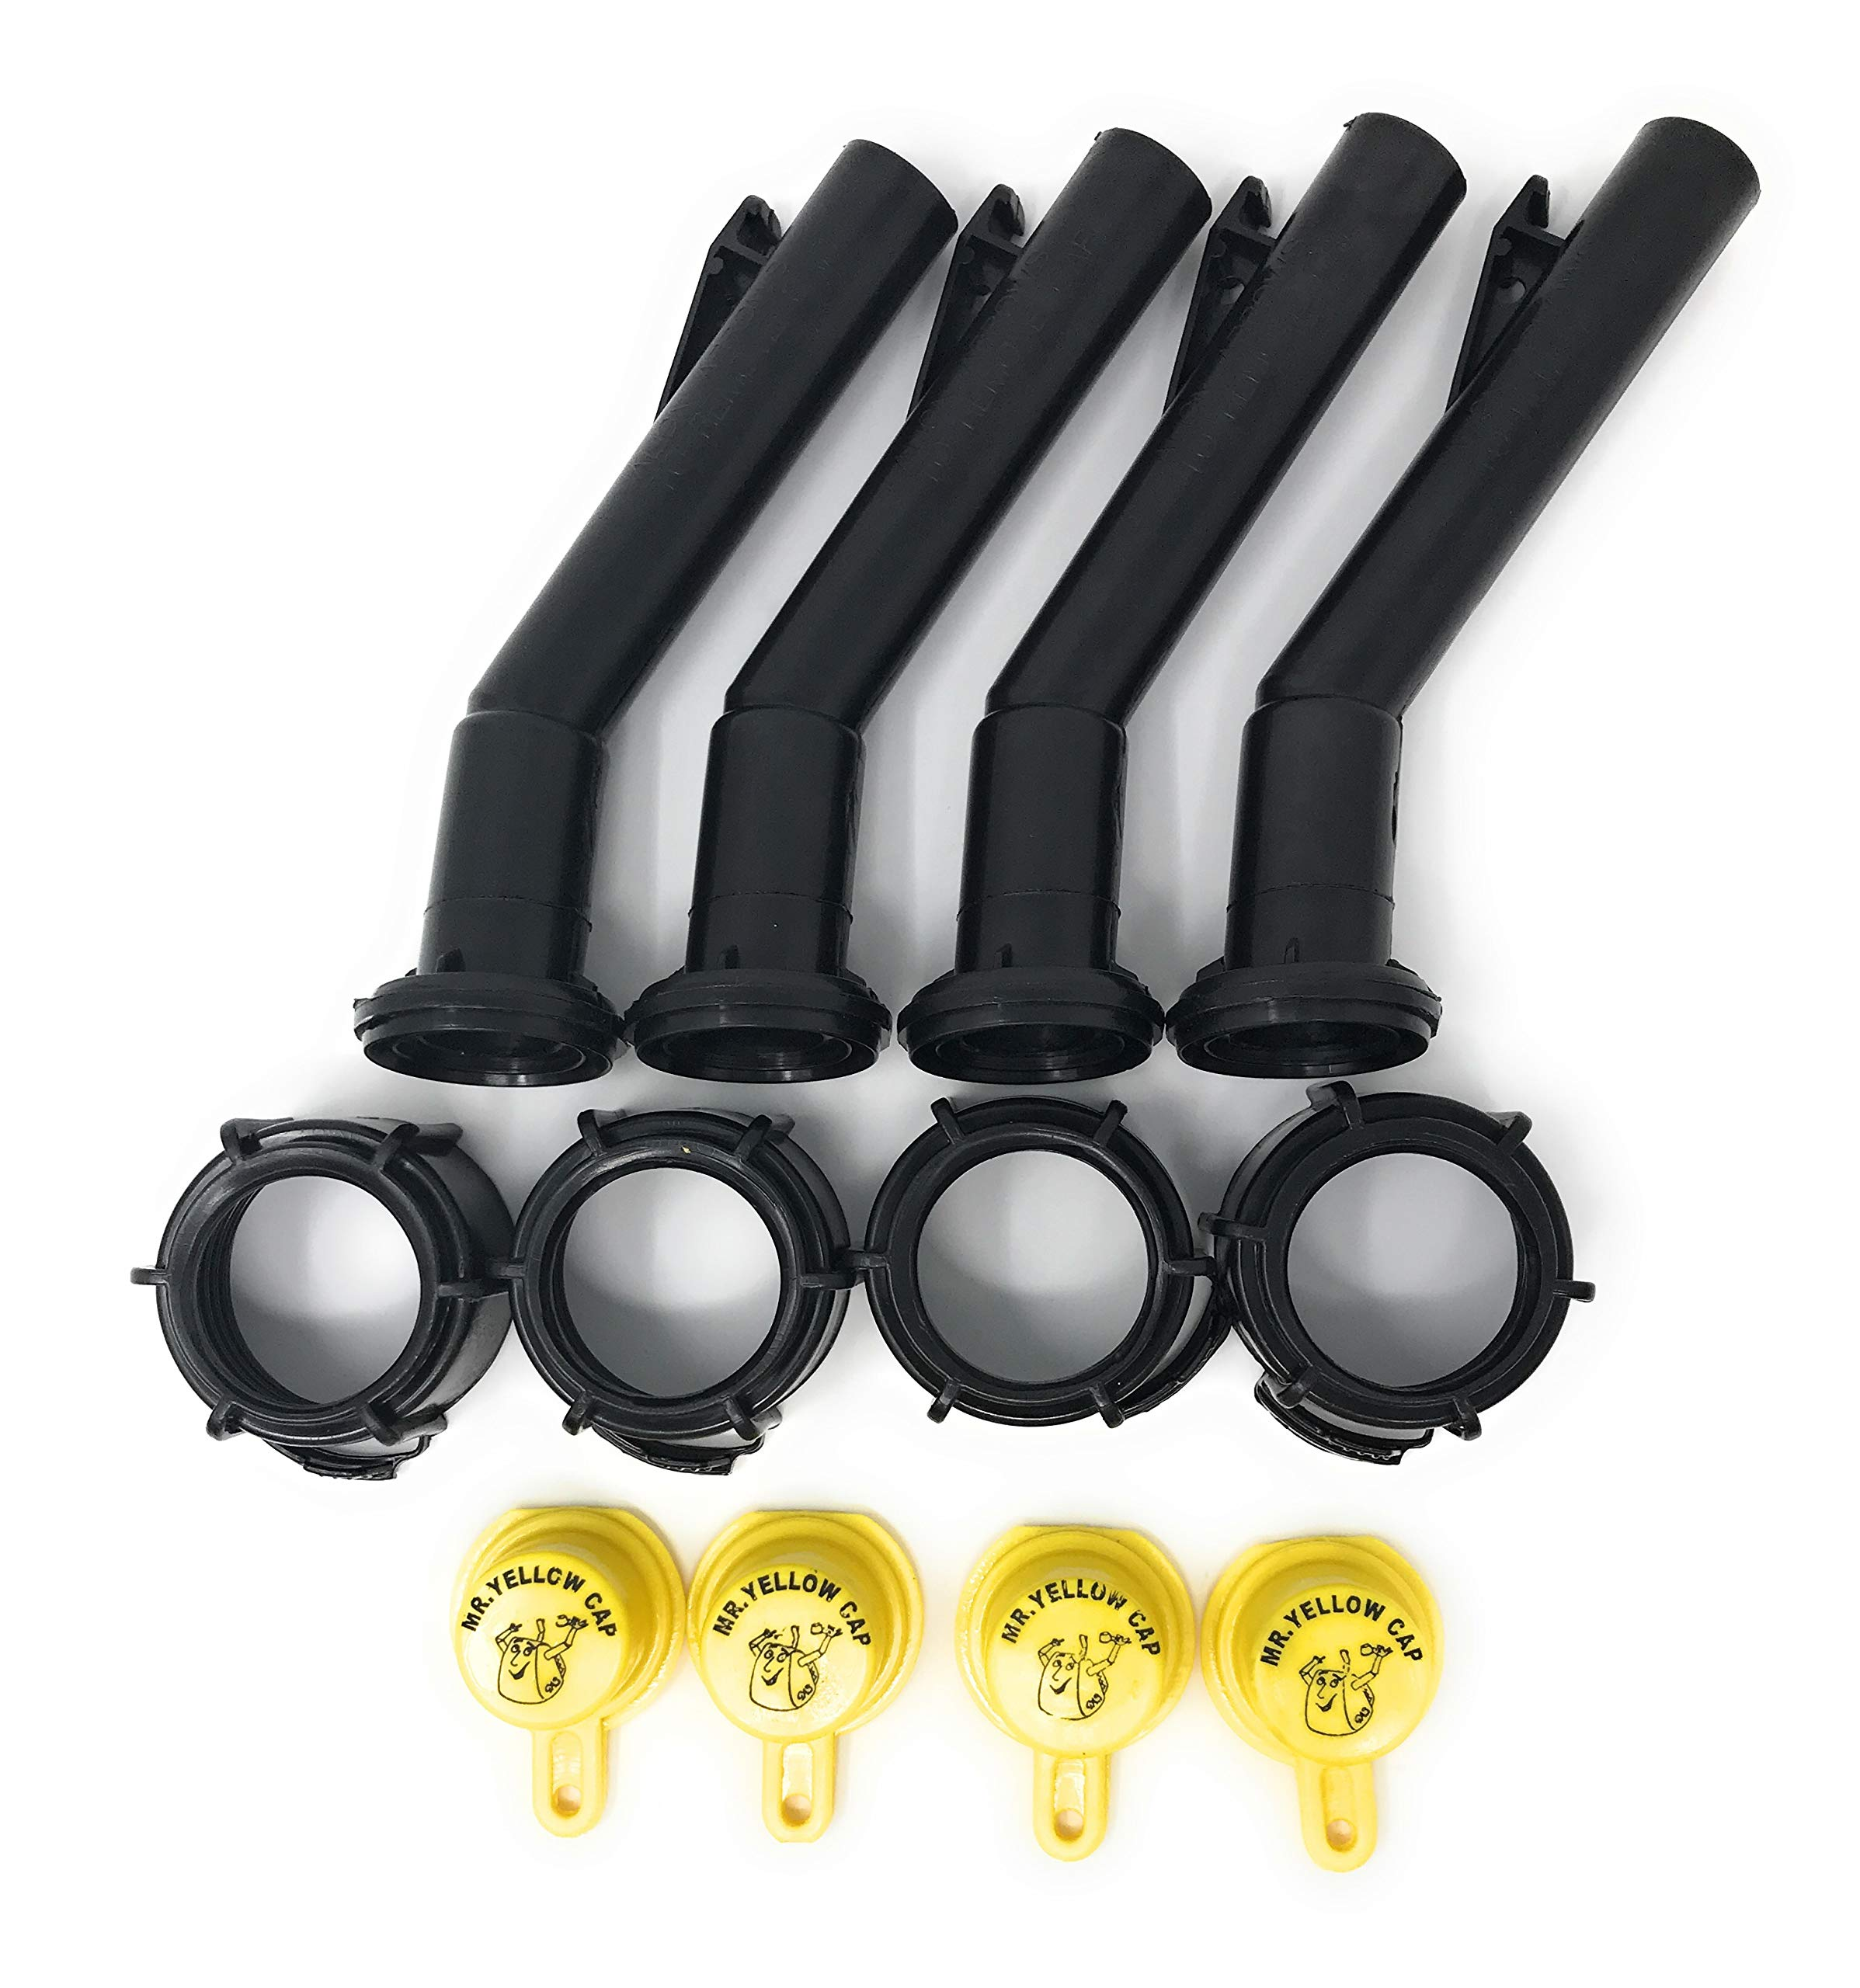 4 - Mr. Yellow Cap Fuel Gas Can Jug Spouts Nozzles, Rings & Caps, replaces Blitz 900302 900092 900094 Old Style - Please Read Description Thoroughly Before Ordering! Thank You